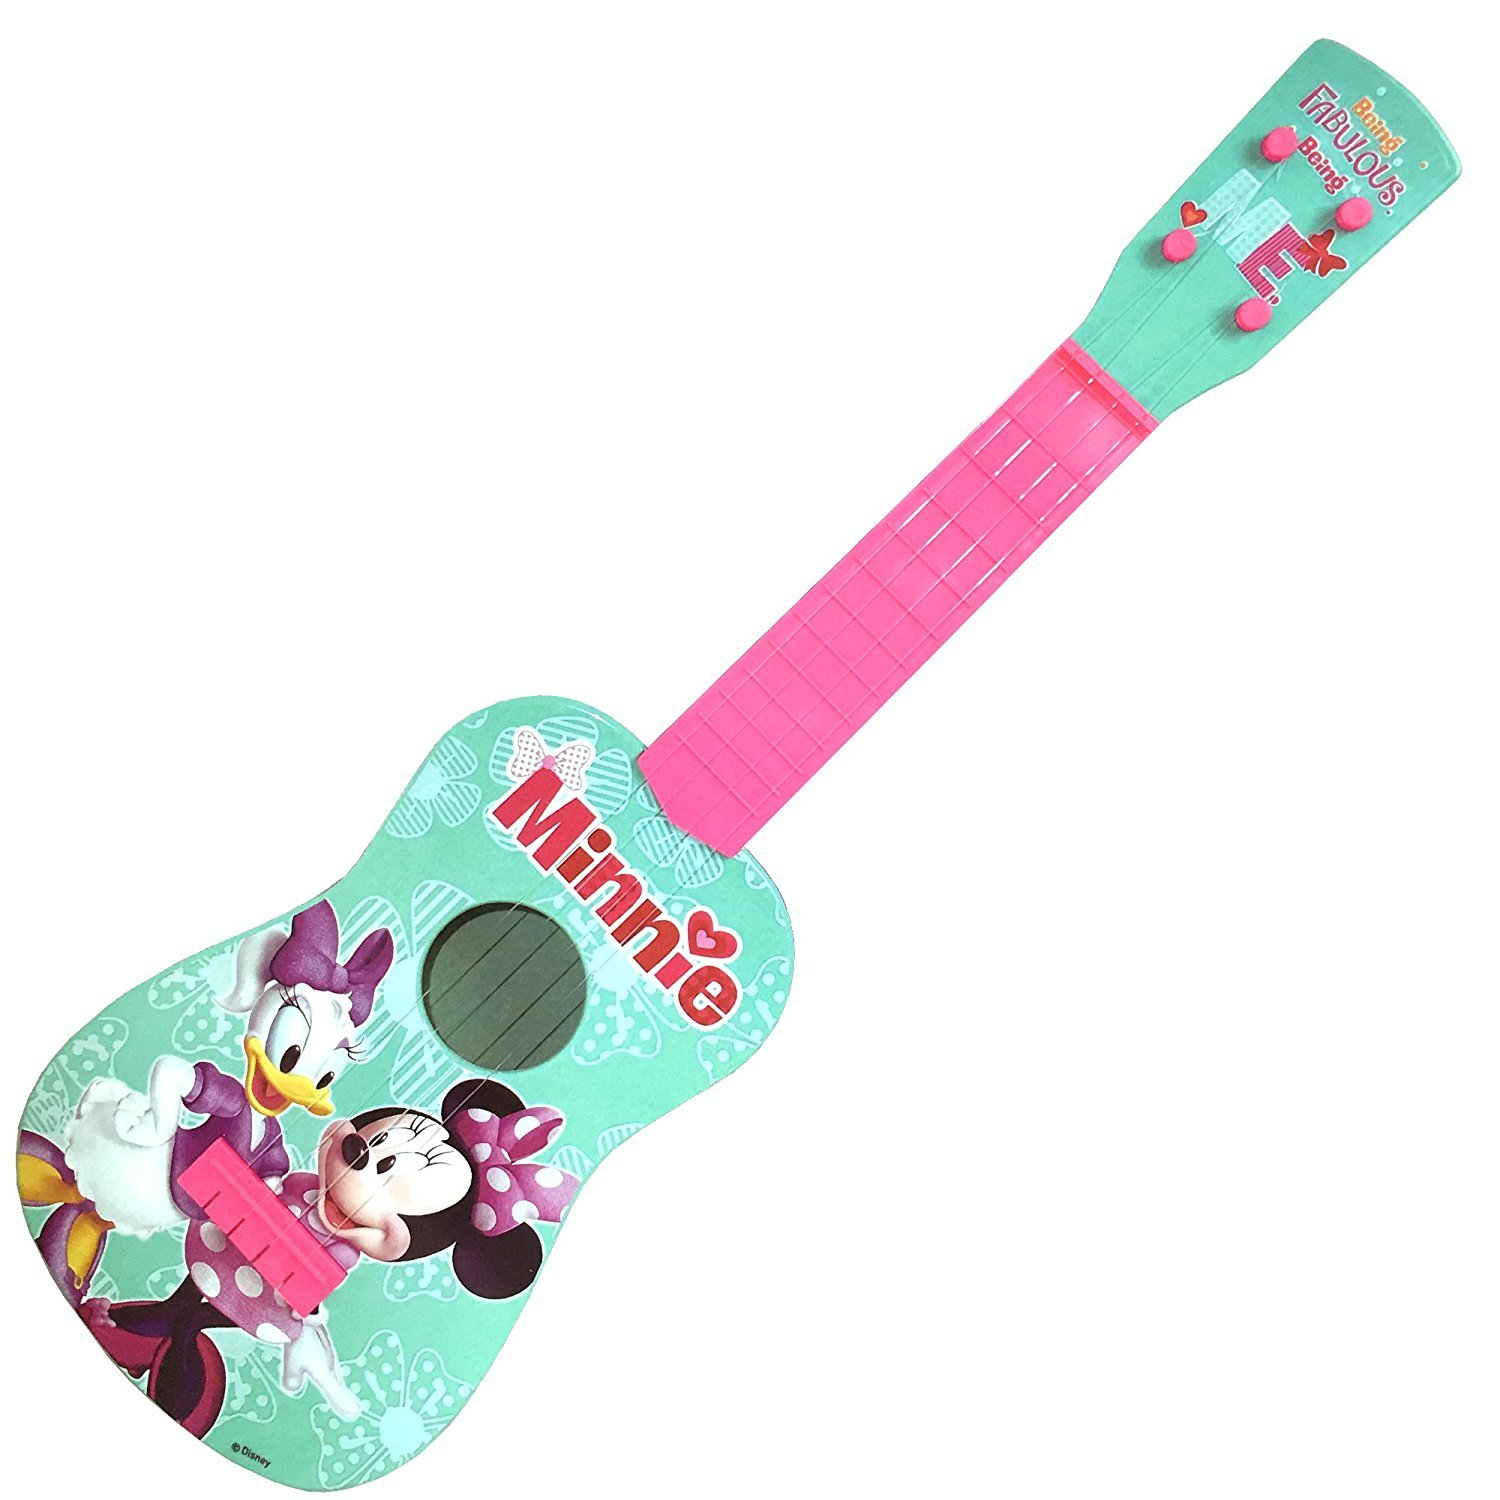 Disney Minnie Mouse Clubhouse Music Play Guitar | 4 Real Guitar String | 24 Inches long - Ukulele Size | Kids Educational Toy Gift.